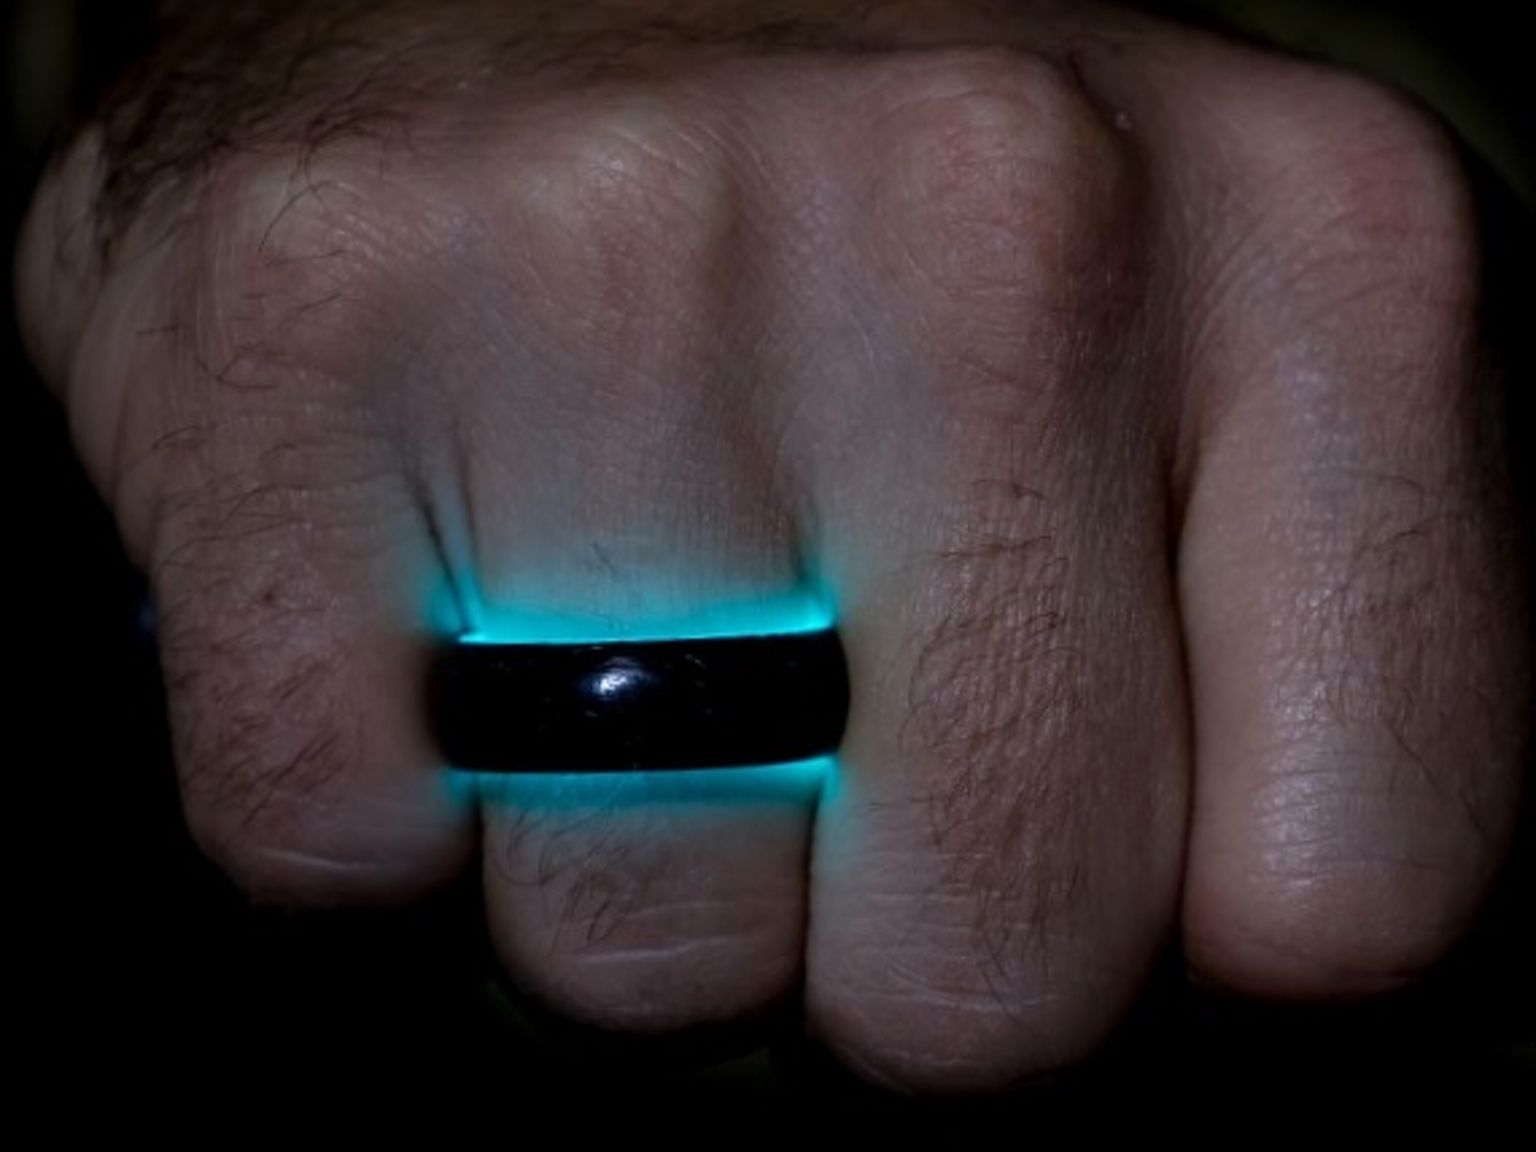 carbon fiber wedding bands Lume Ring Turquoise Carbon 6Carbon FiberGroom RingMen Wedding